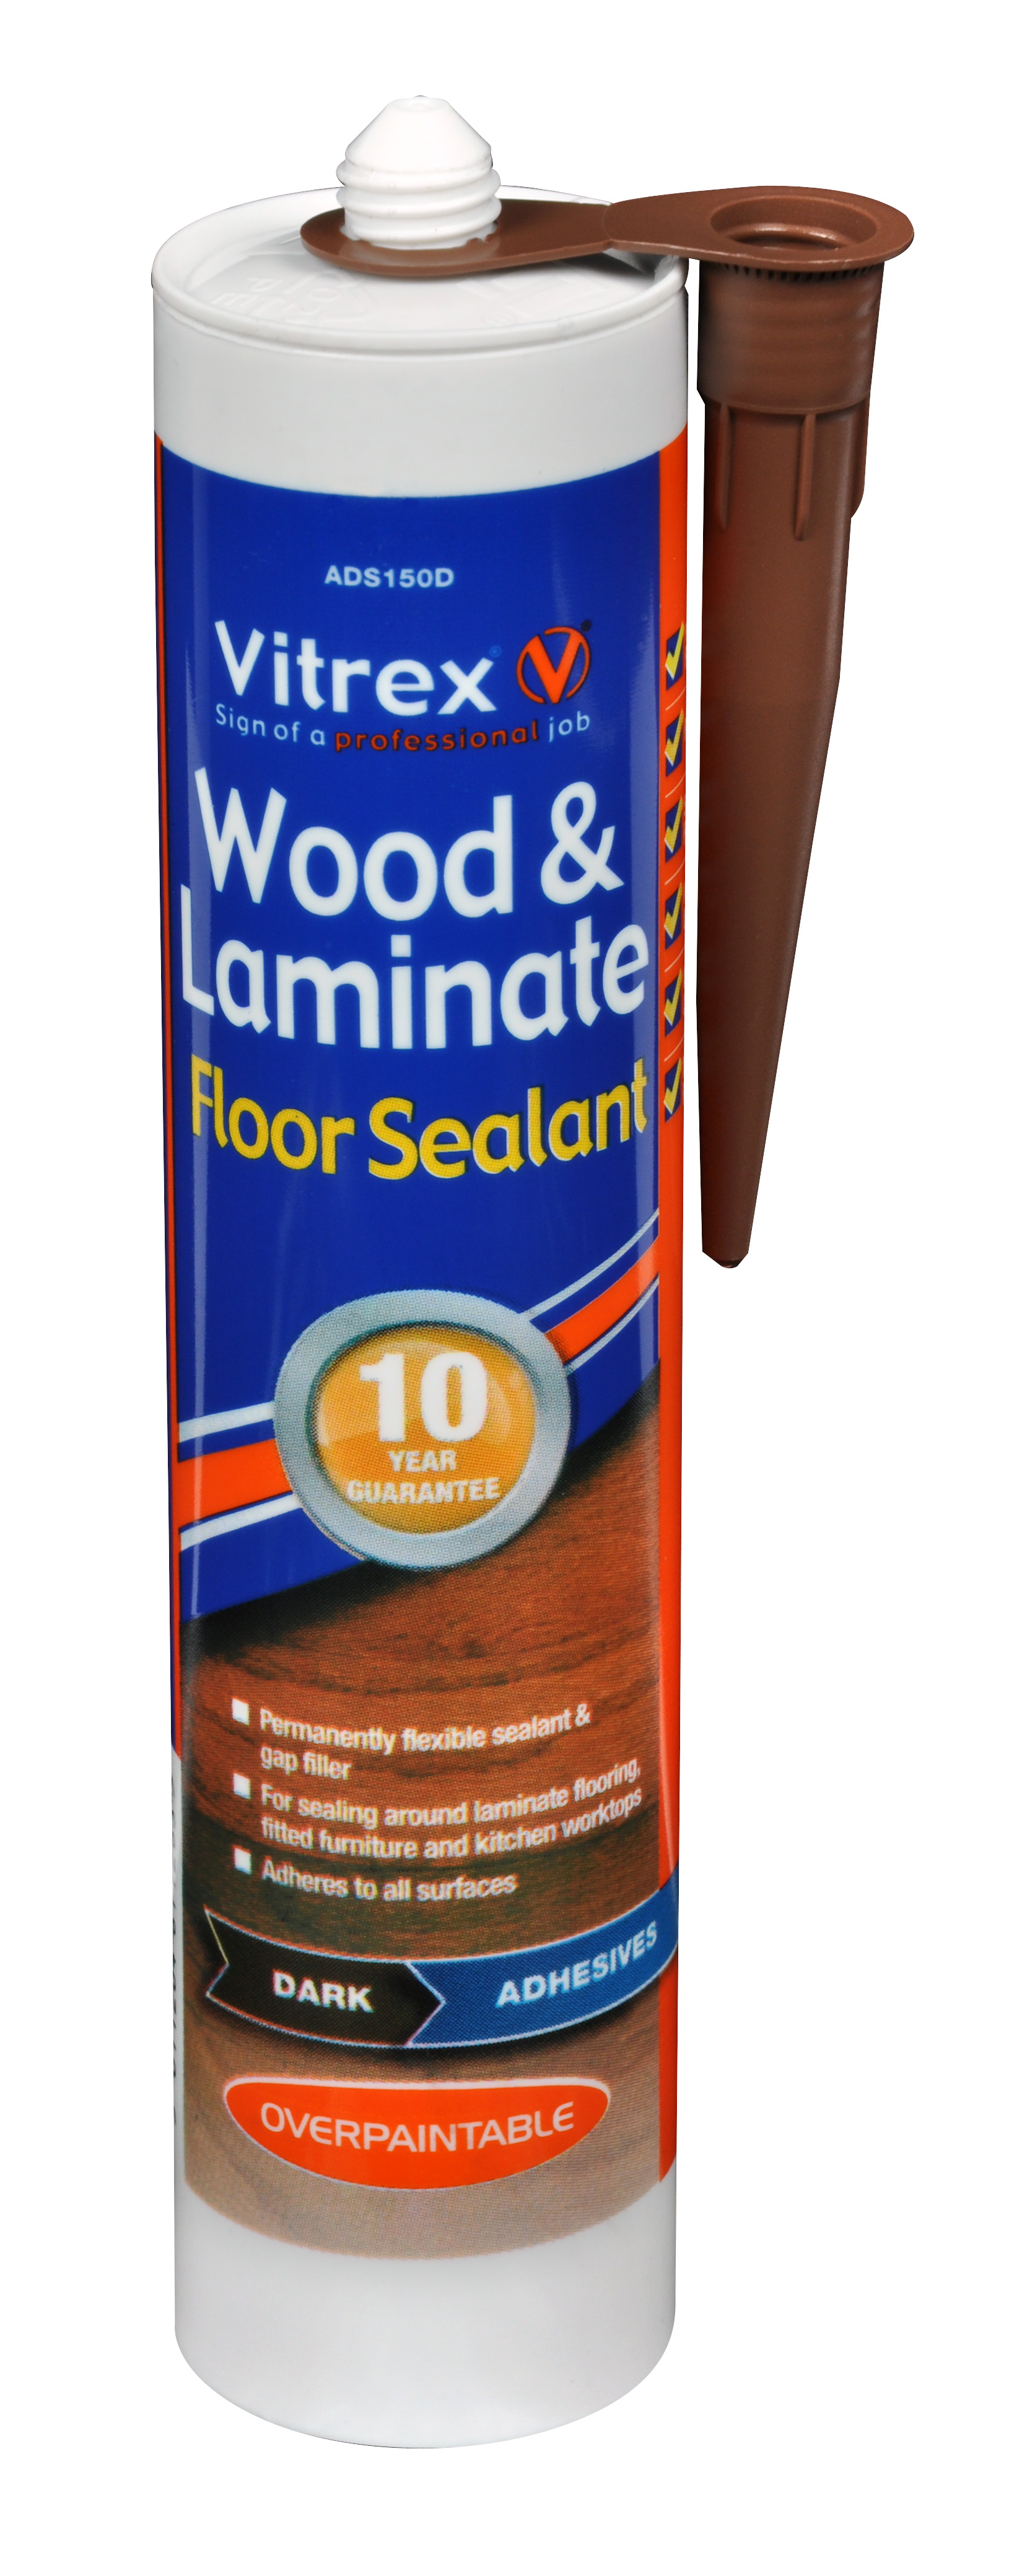 Wood & Laminate Floor Sealant - Dark